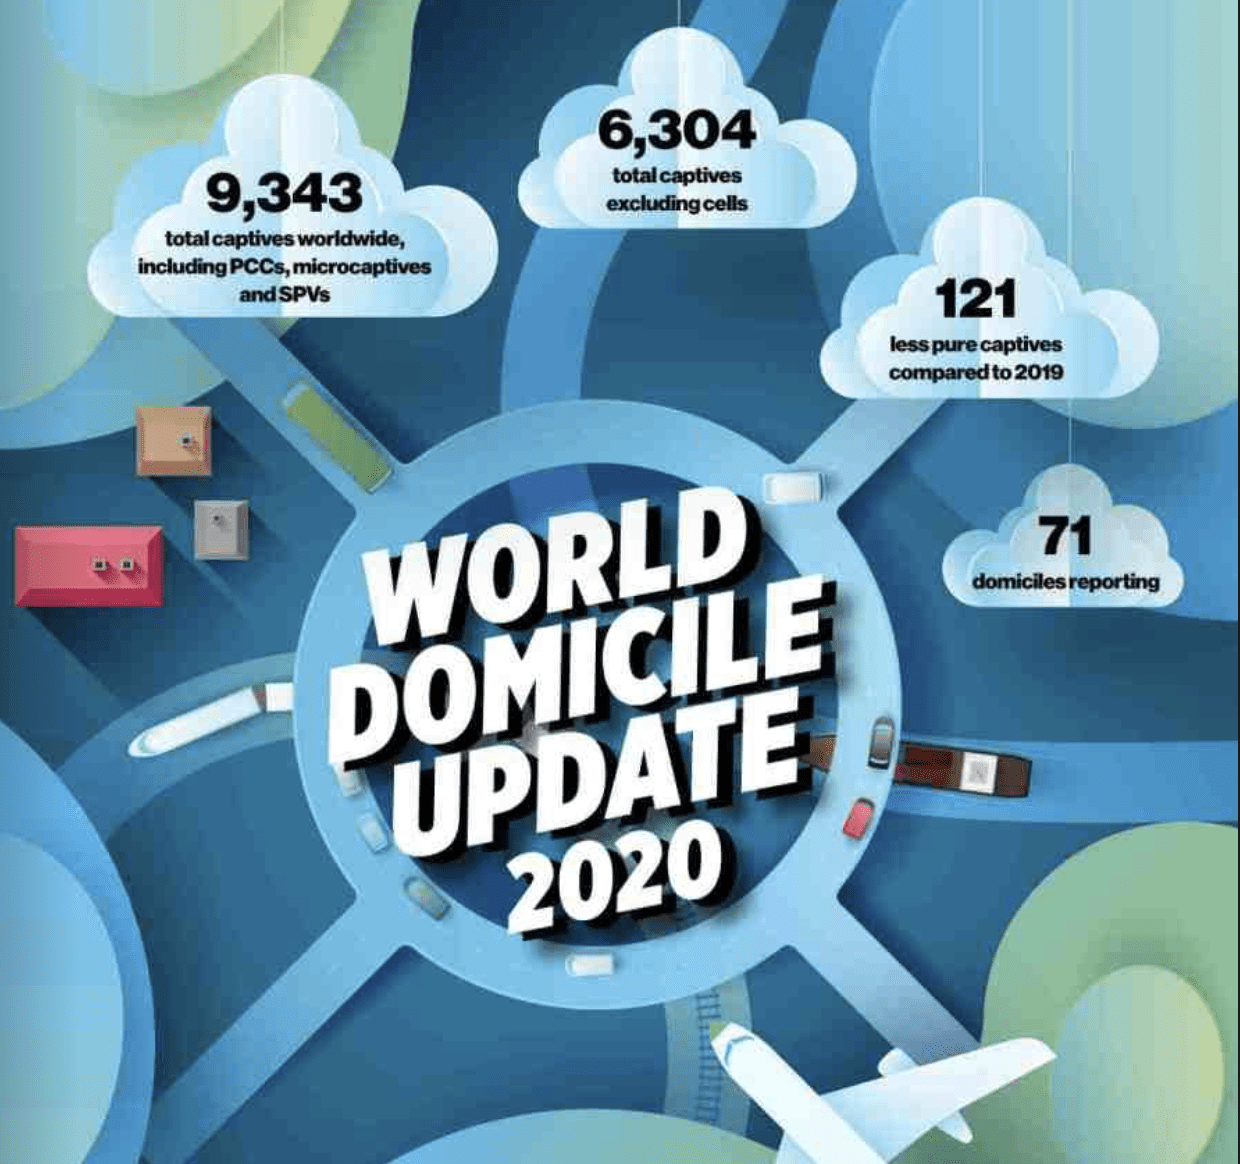 World Domicile Update CWC Tile